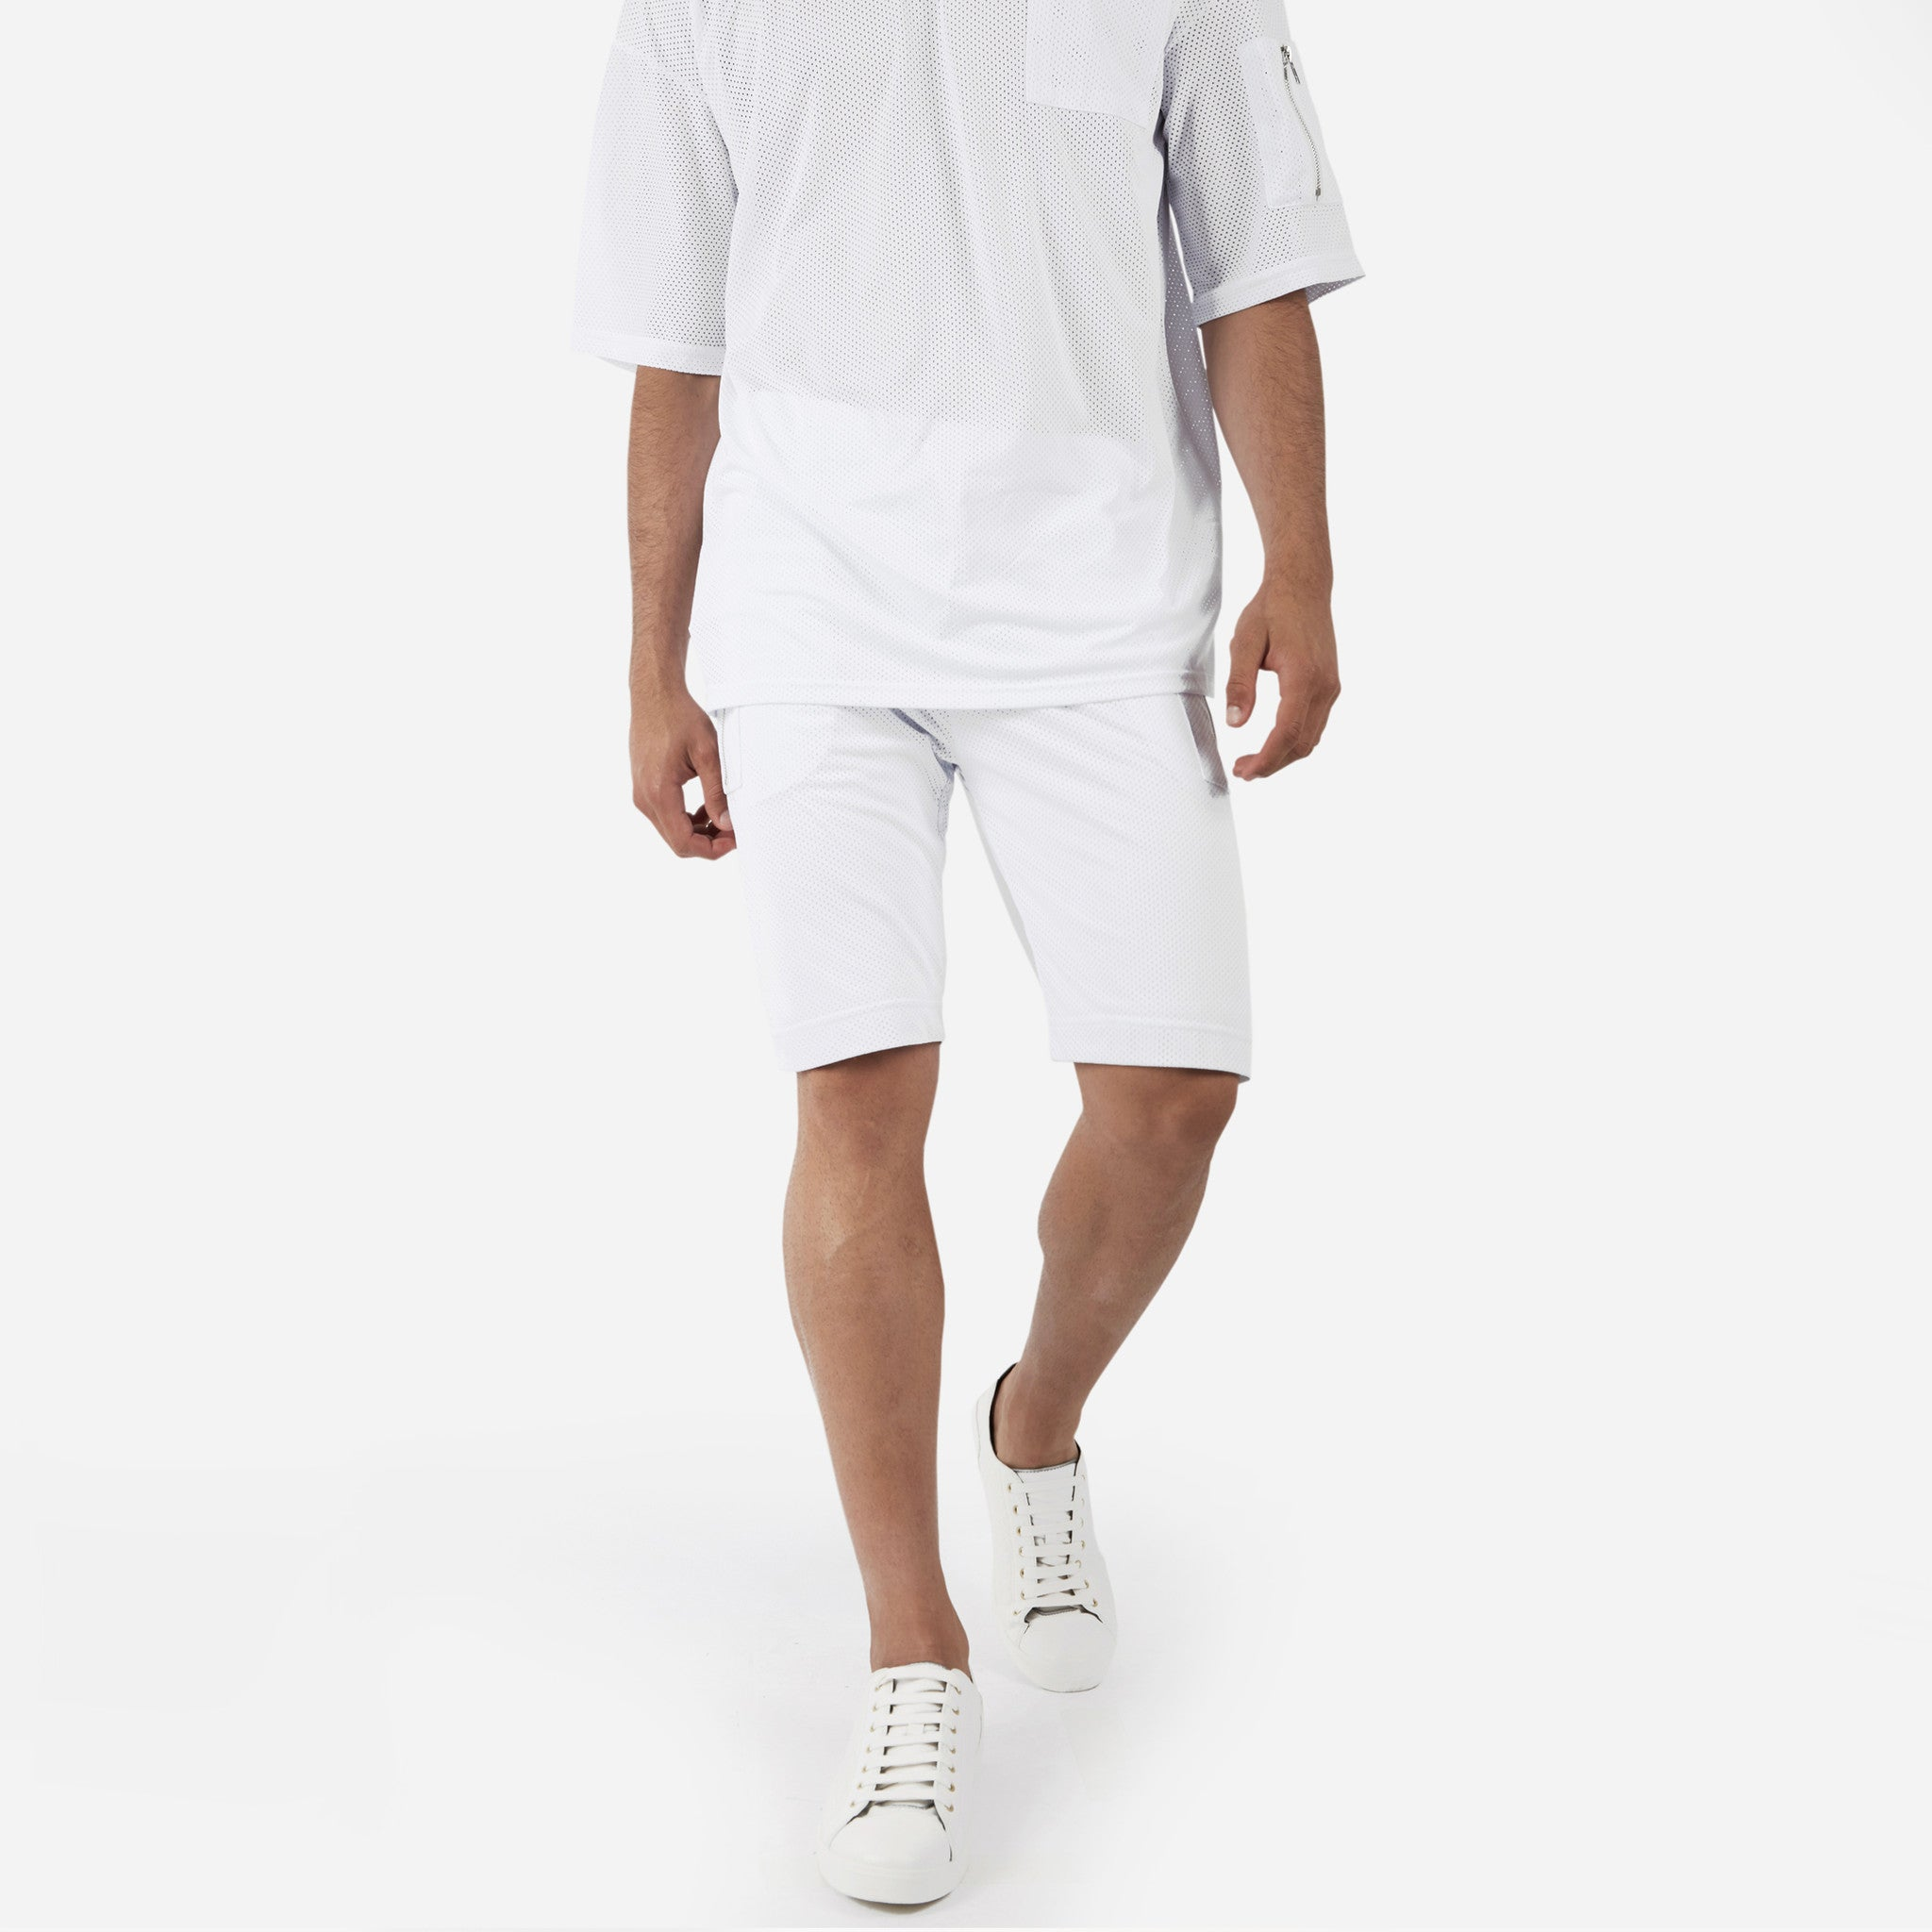 SR283 Utility Airtex Shorts - White - underated london - underatedco - 1